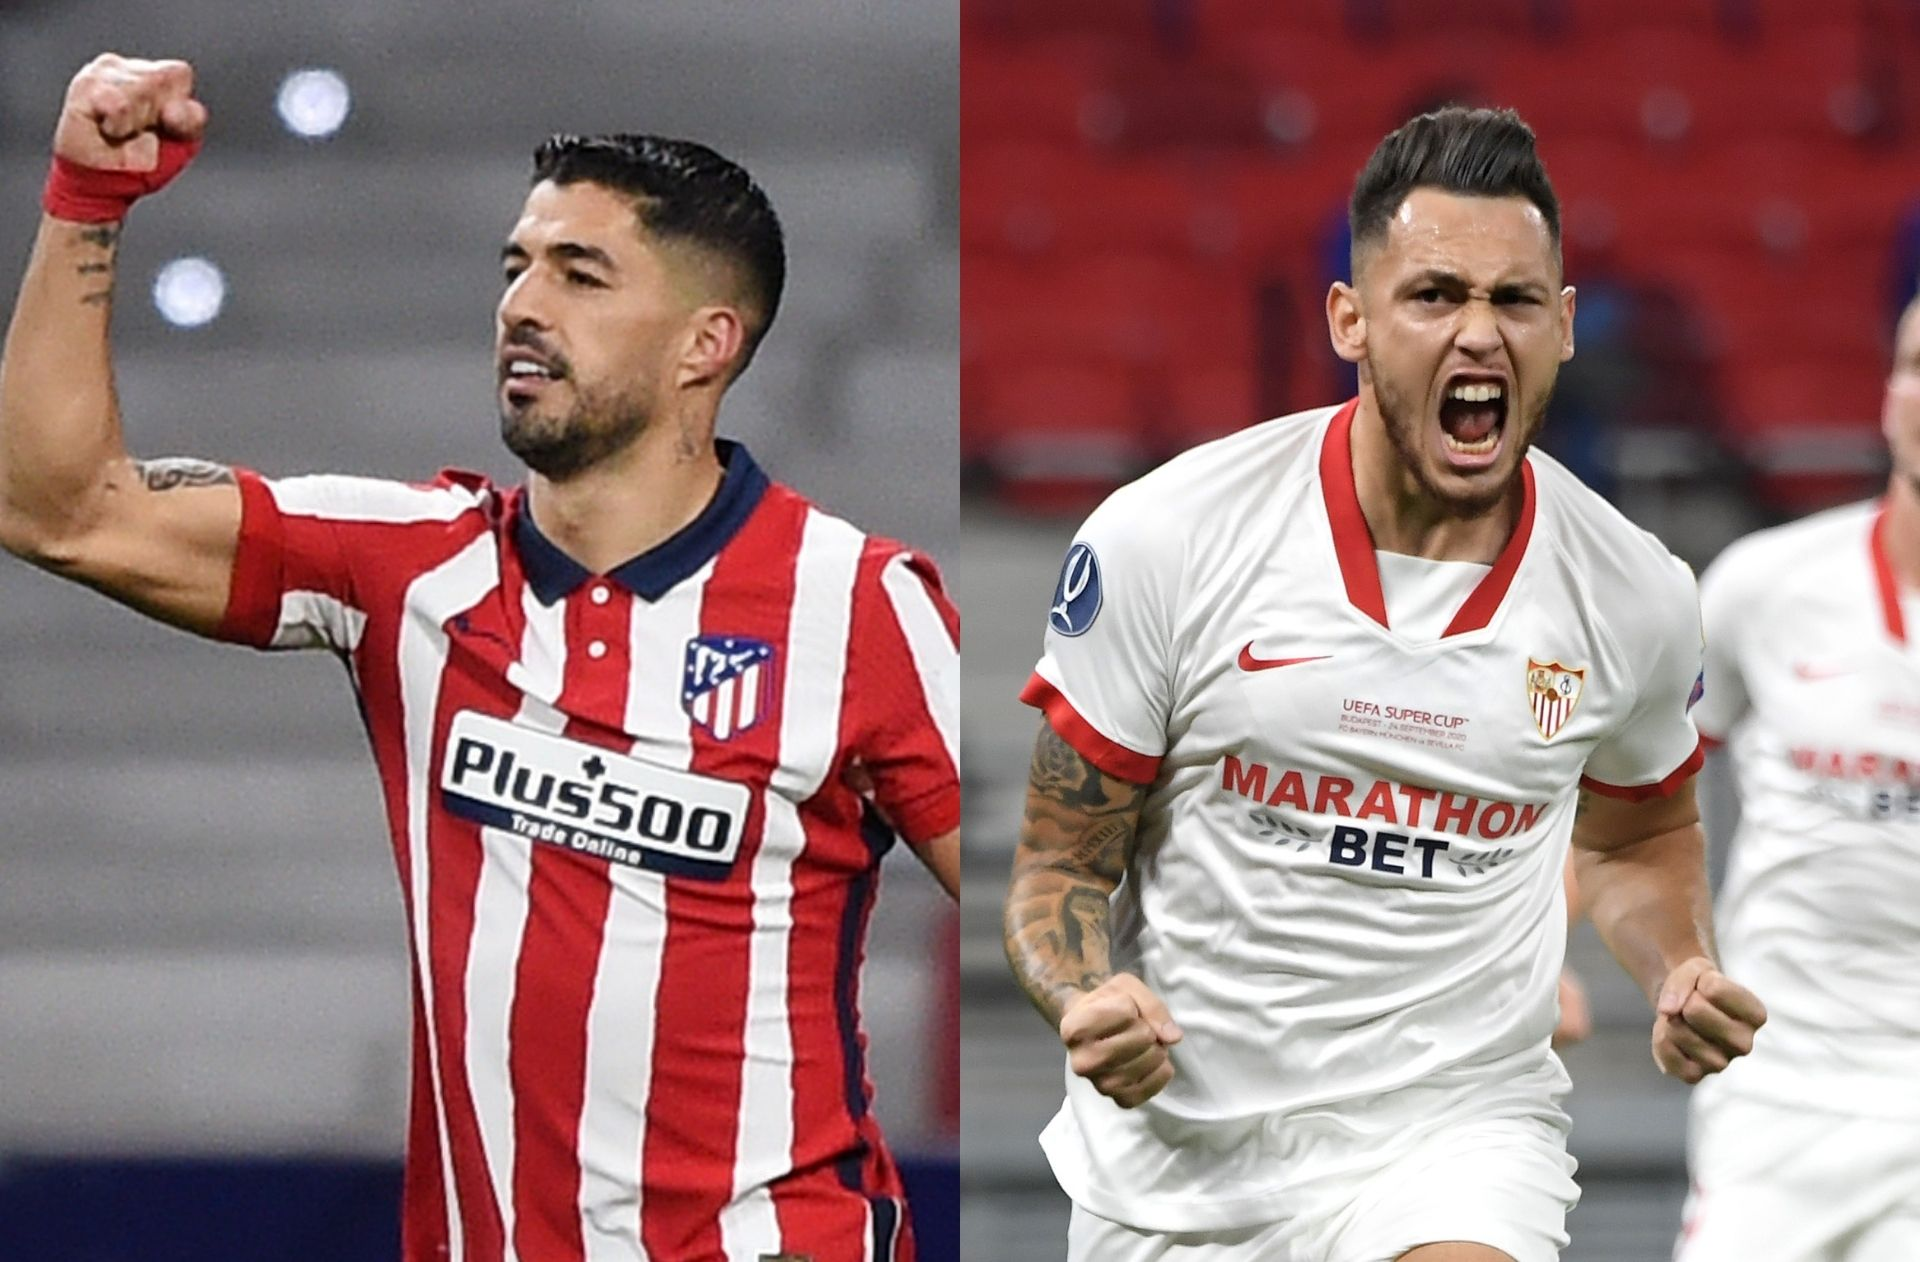 Atletico madrid vs sevilla betting preview on betfair how to bet on sports games online